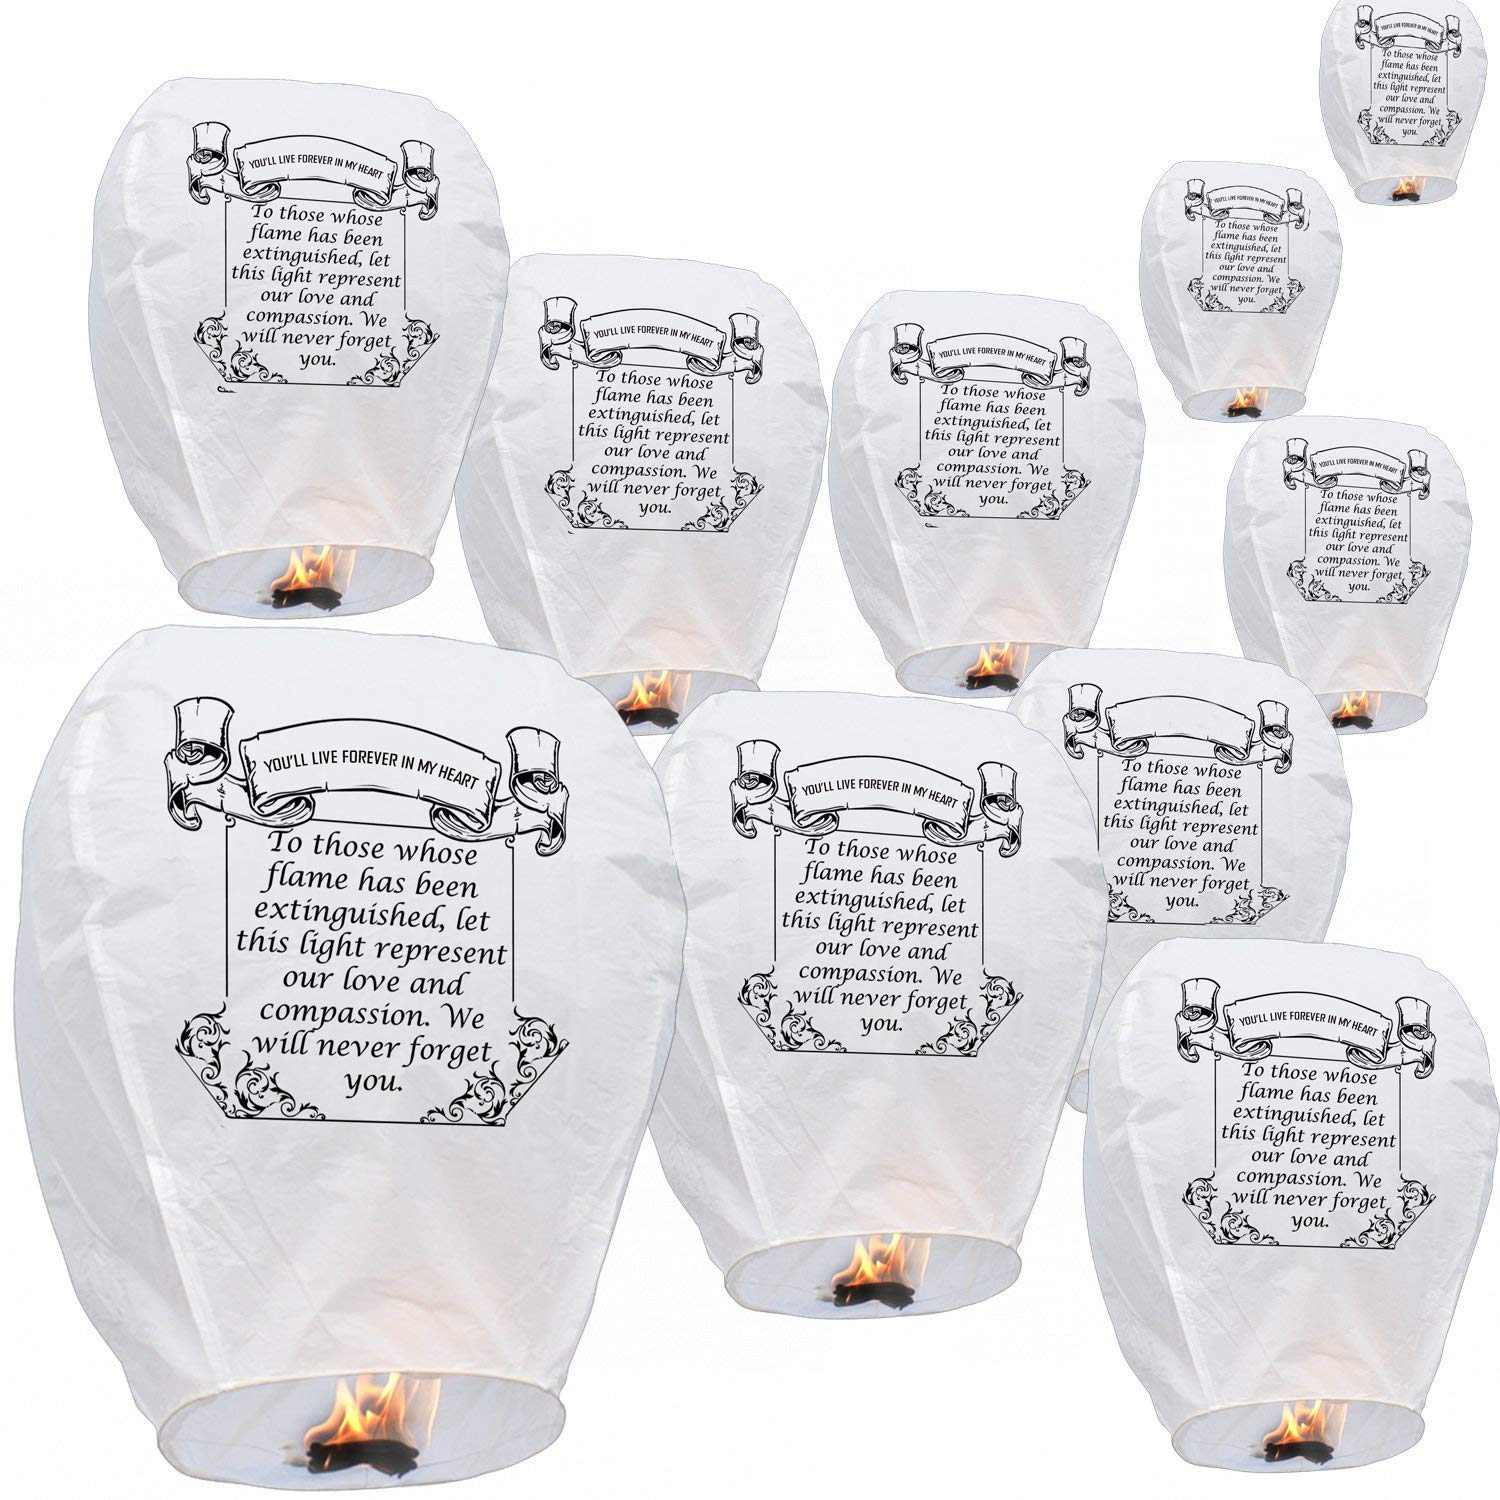 Honereny Wishing Lanterns in Memory White,Biodegradable Environmentally Friendly Beautiful for Special Occasions, Weddings, Chinese Festival, Memorials Etc. (Pack of 10) by Honereny